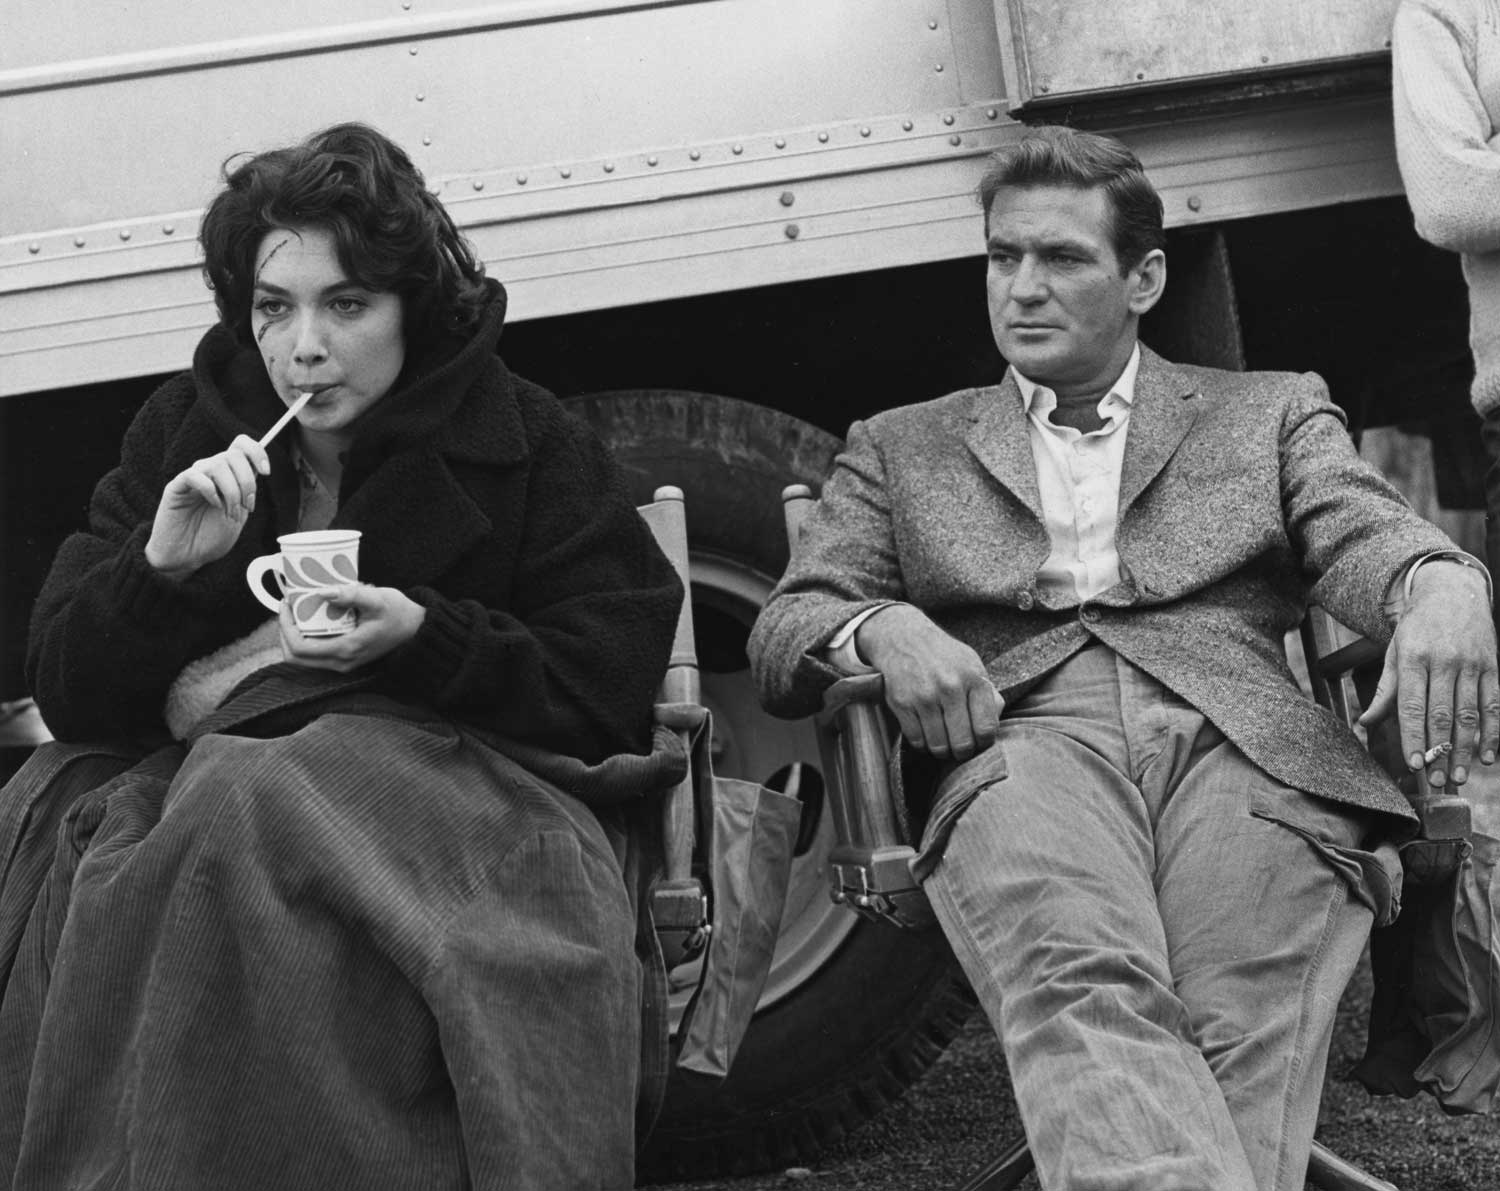 The actors take an unusual break during the filming of THE BIRDS.